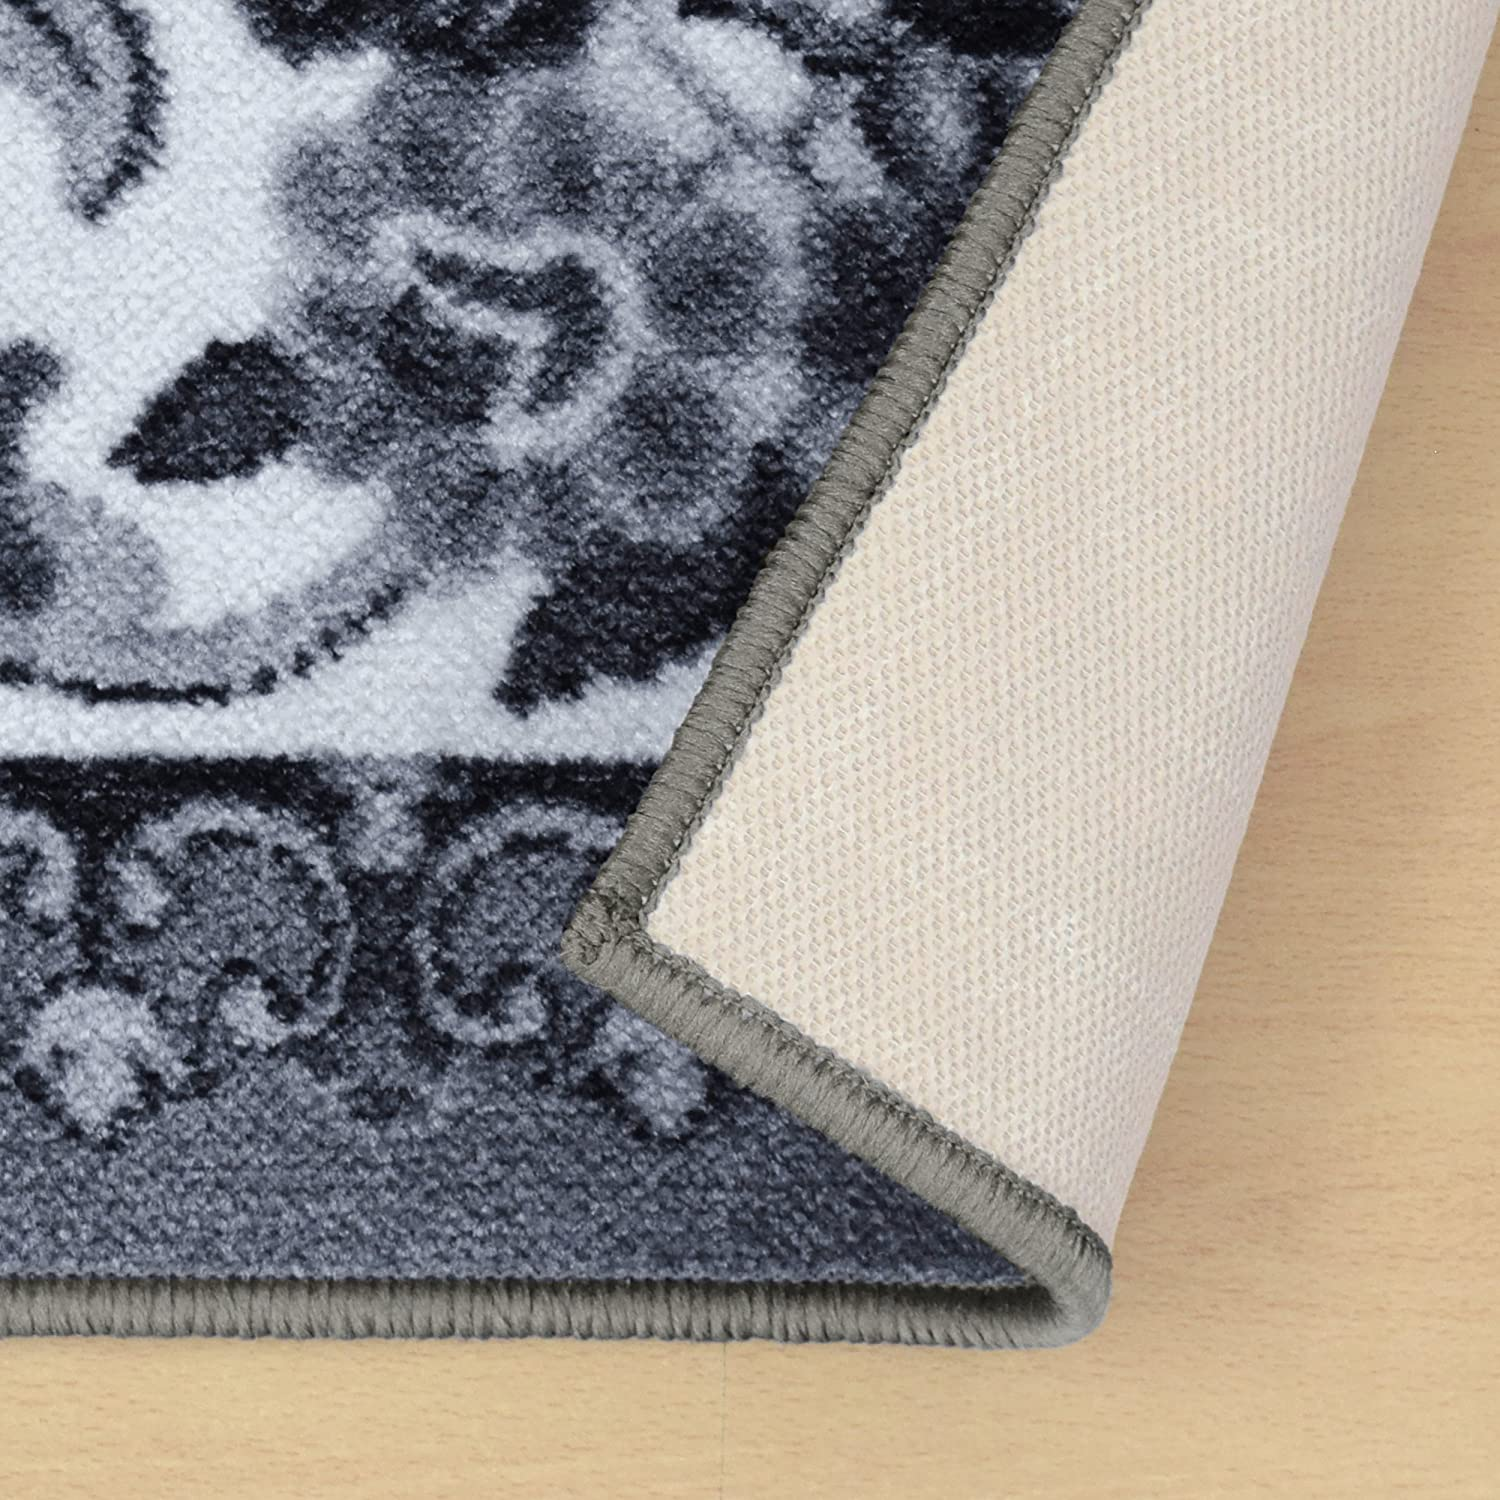 Runner 2.6x8RUG-SERAPHINA Superiors Designer Non-slip Seraphina Area Rug; Digitally Printed Black White Affordable and Fashionable Low Maintenance